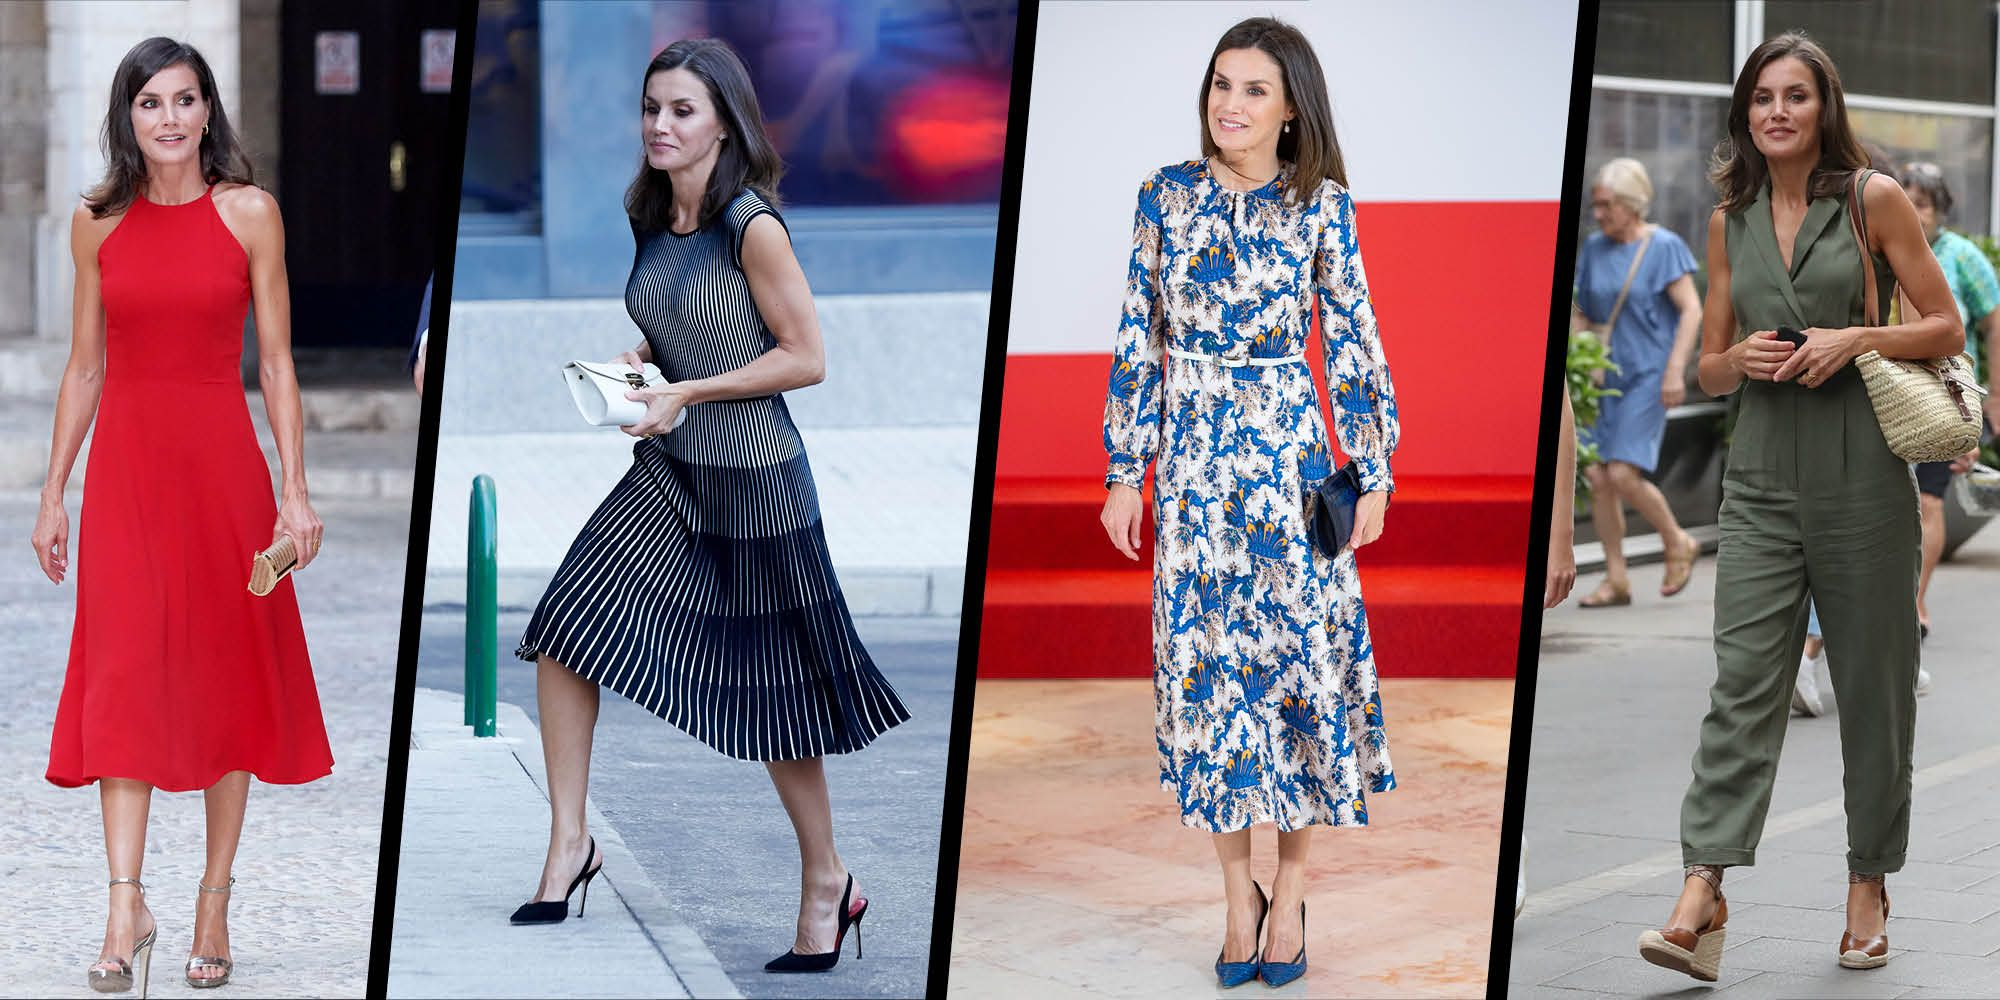 Lessons in timeless style from Queen Letizia